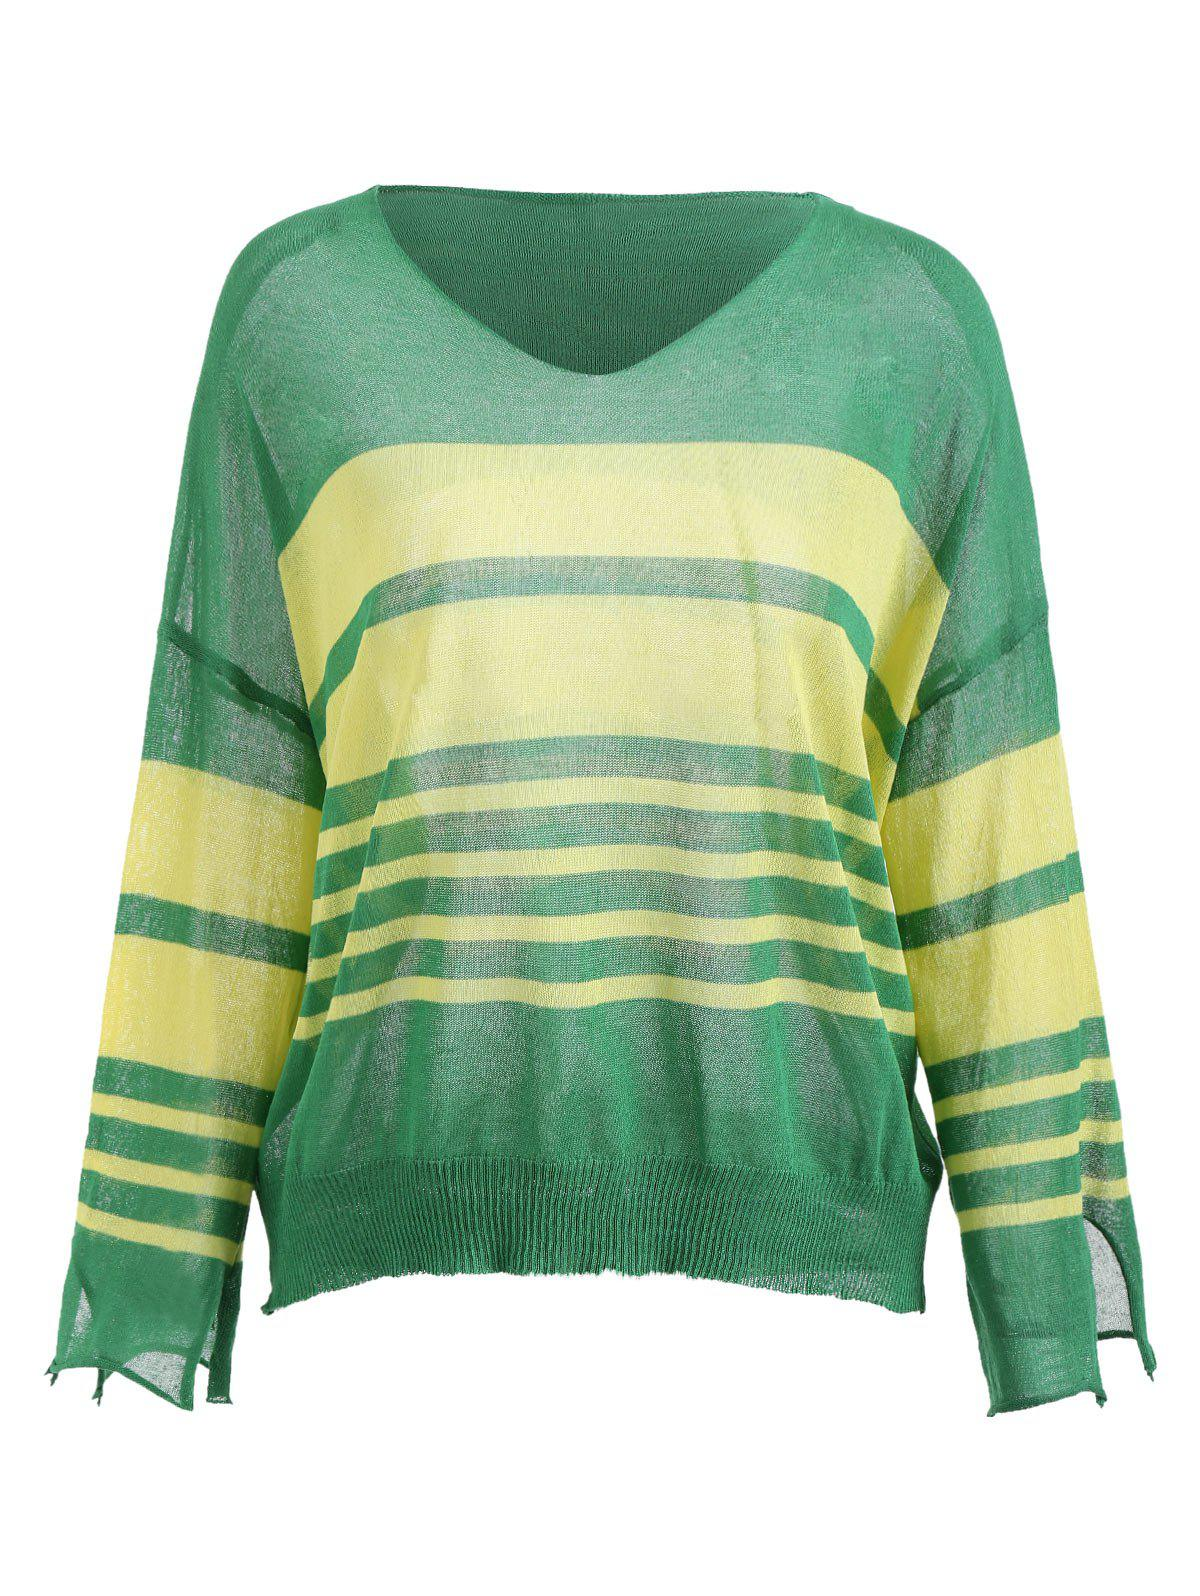 Cheap Color Block Stripe Knit Top